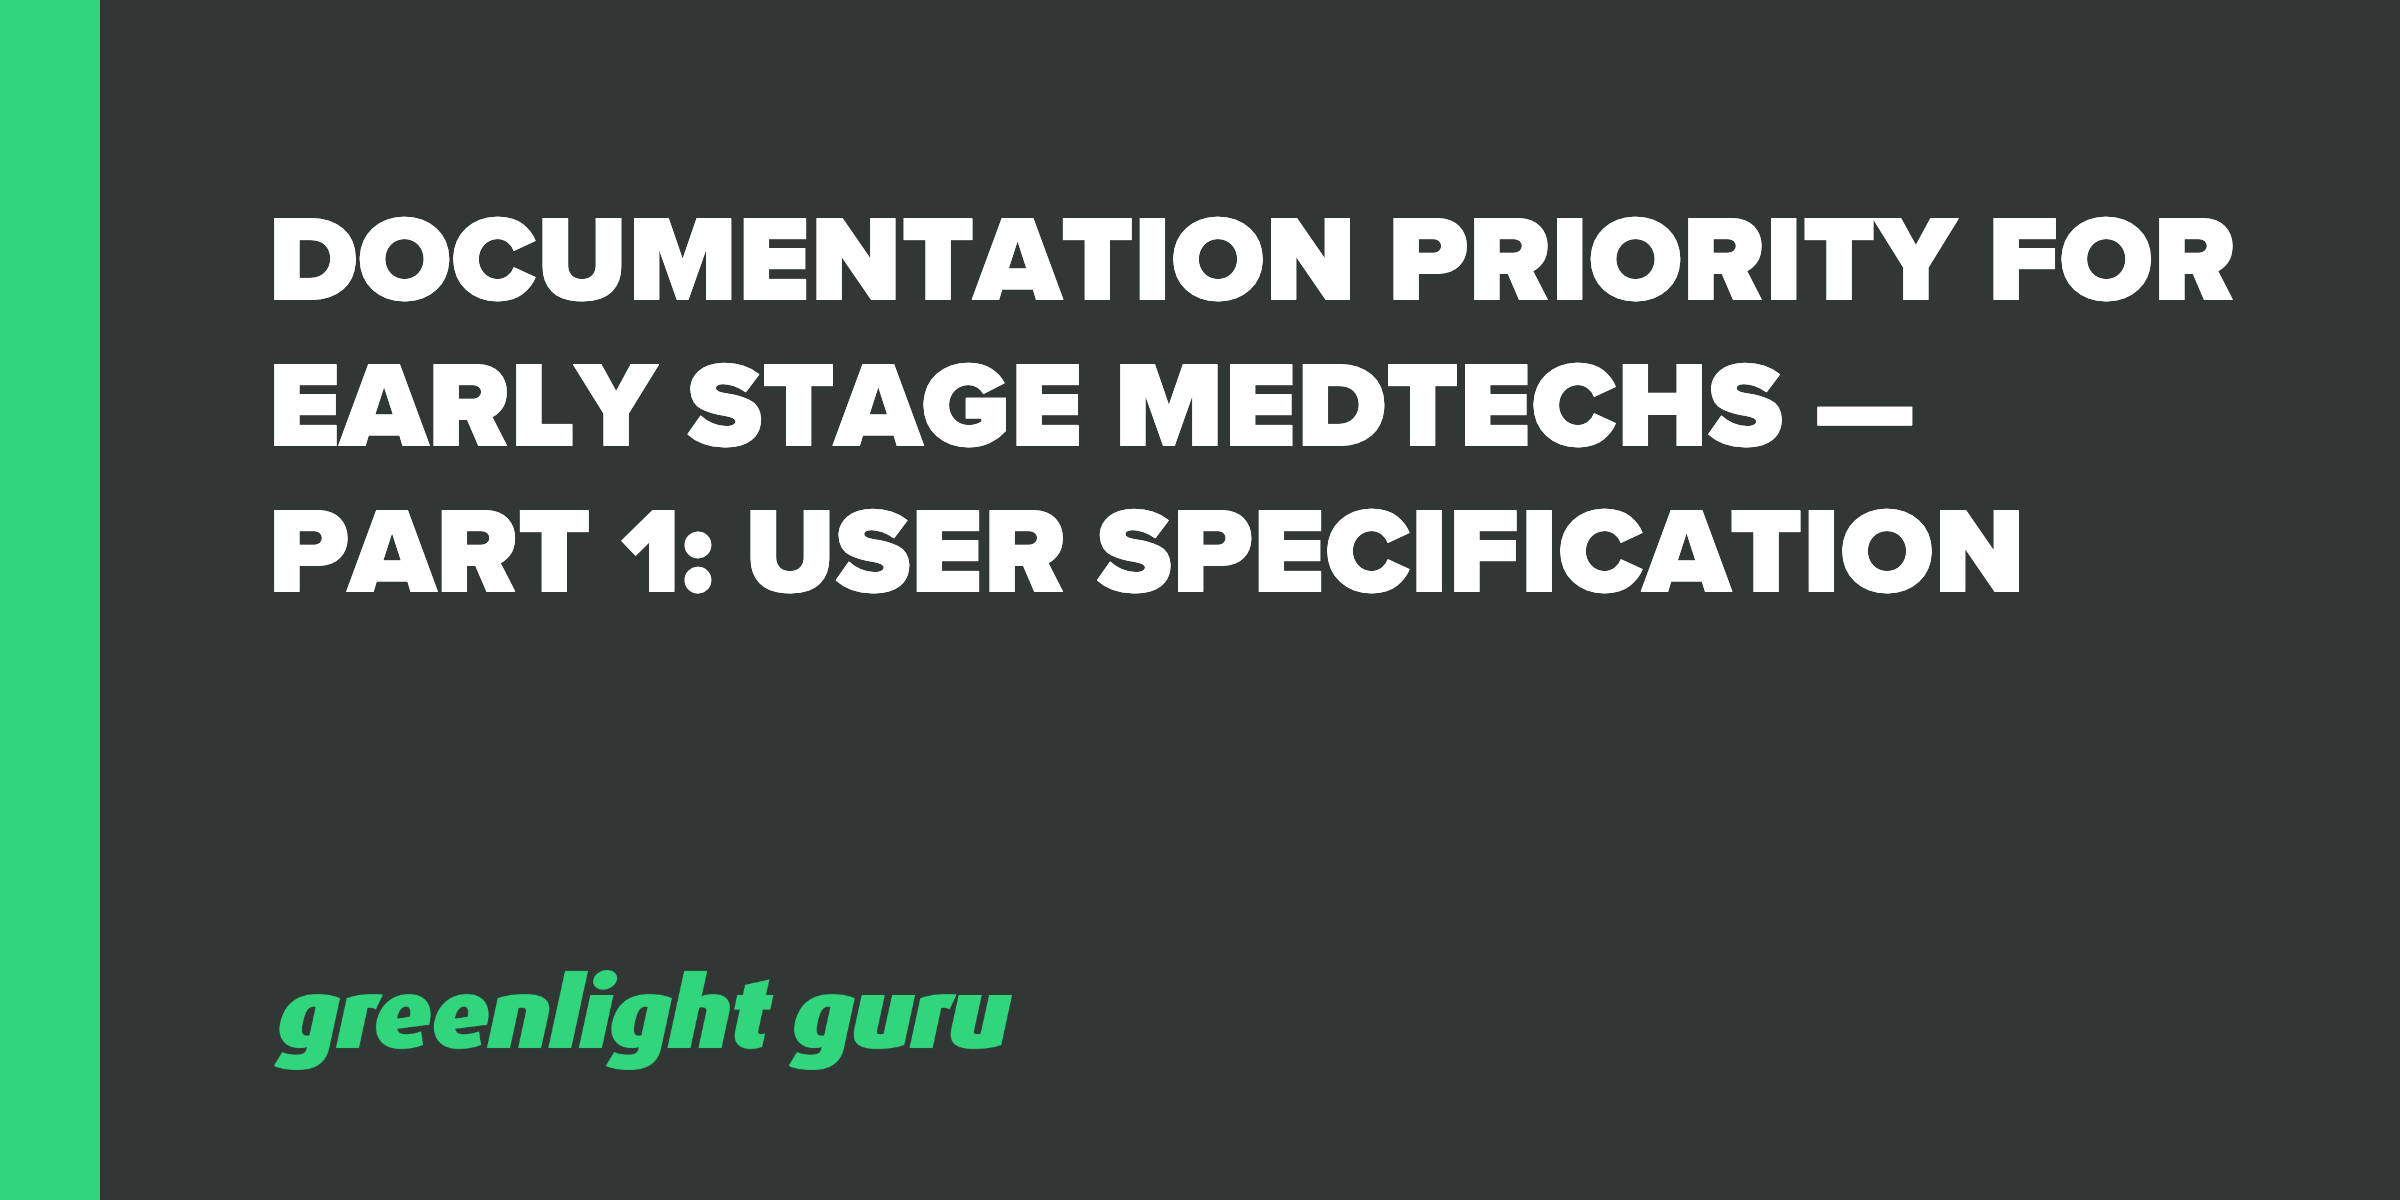 documentation priority for early stage medtechs - part 1 user specification